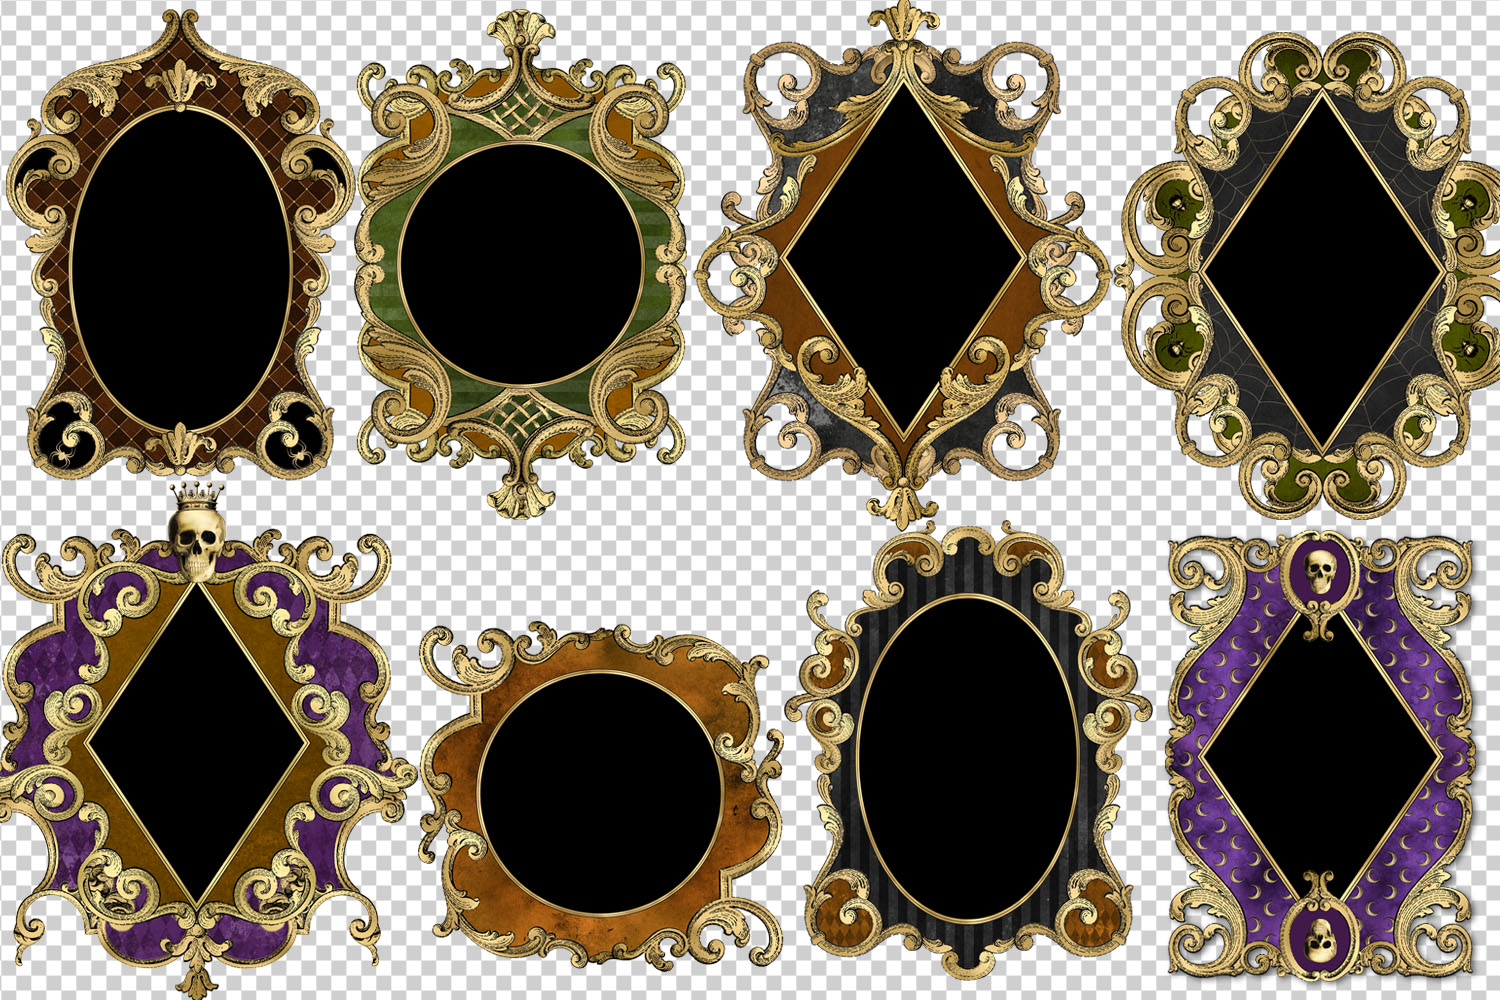 Ornate Halloween Frames Clipart example image 3